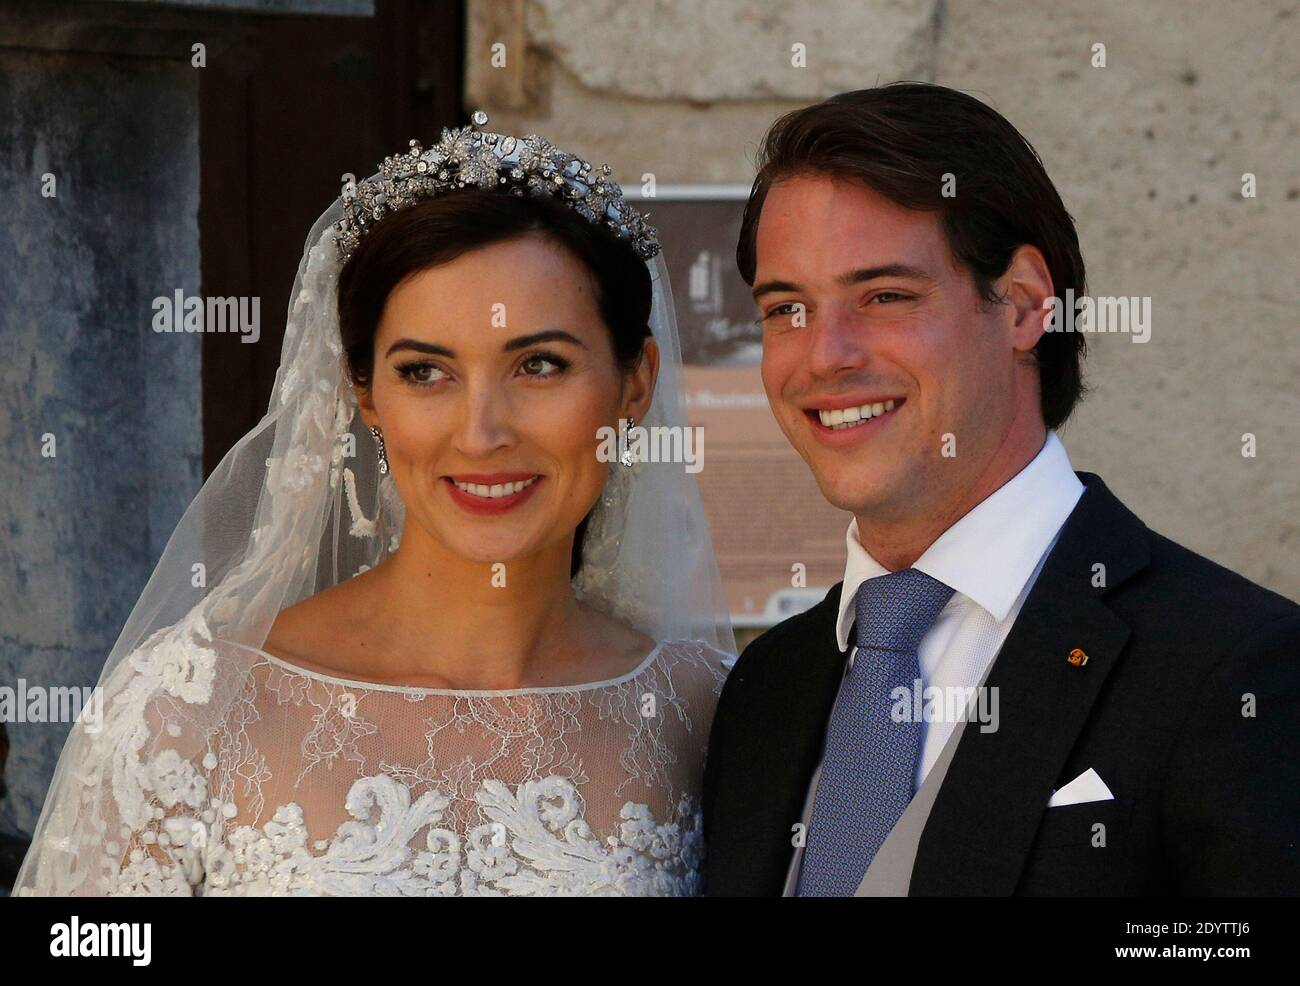 https www alamy com prince felix and princess claire of luxembourg leave the sainte marie madeleine basilica after their religious wedding in saint maximin la sainte baume southern france on september 21 2013 photo by abacapresscom image395769982 html